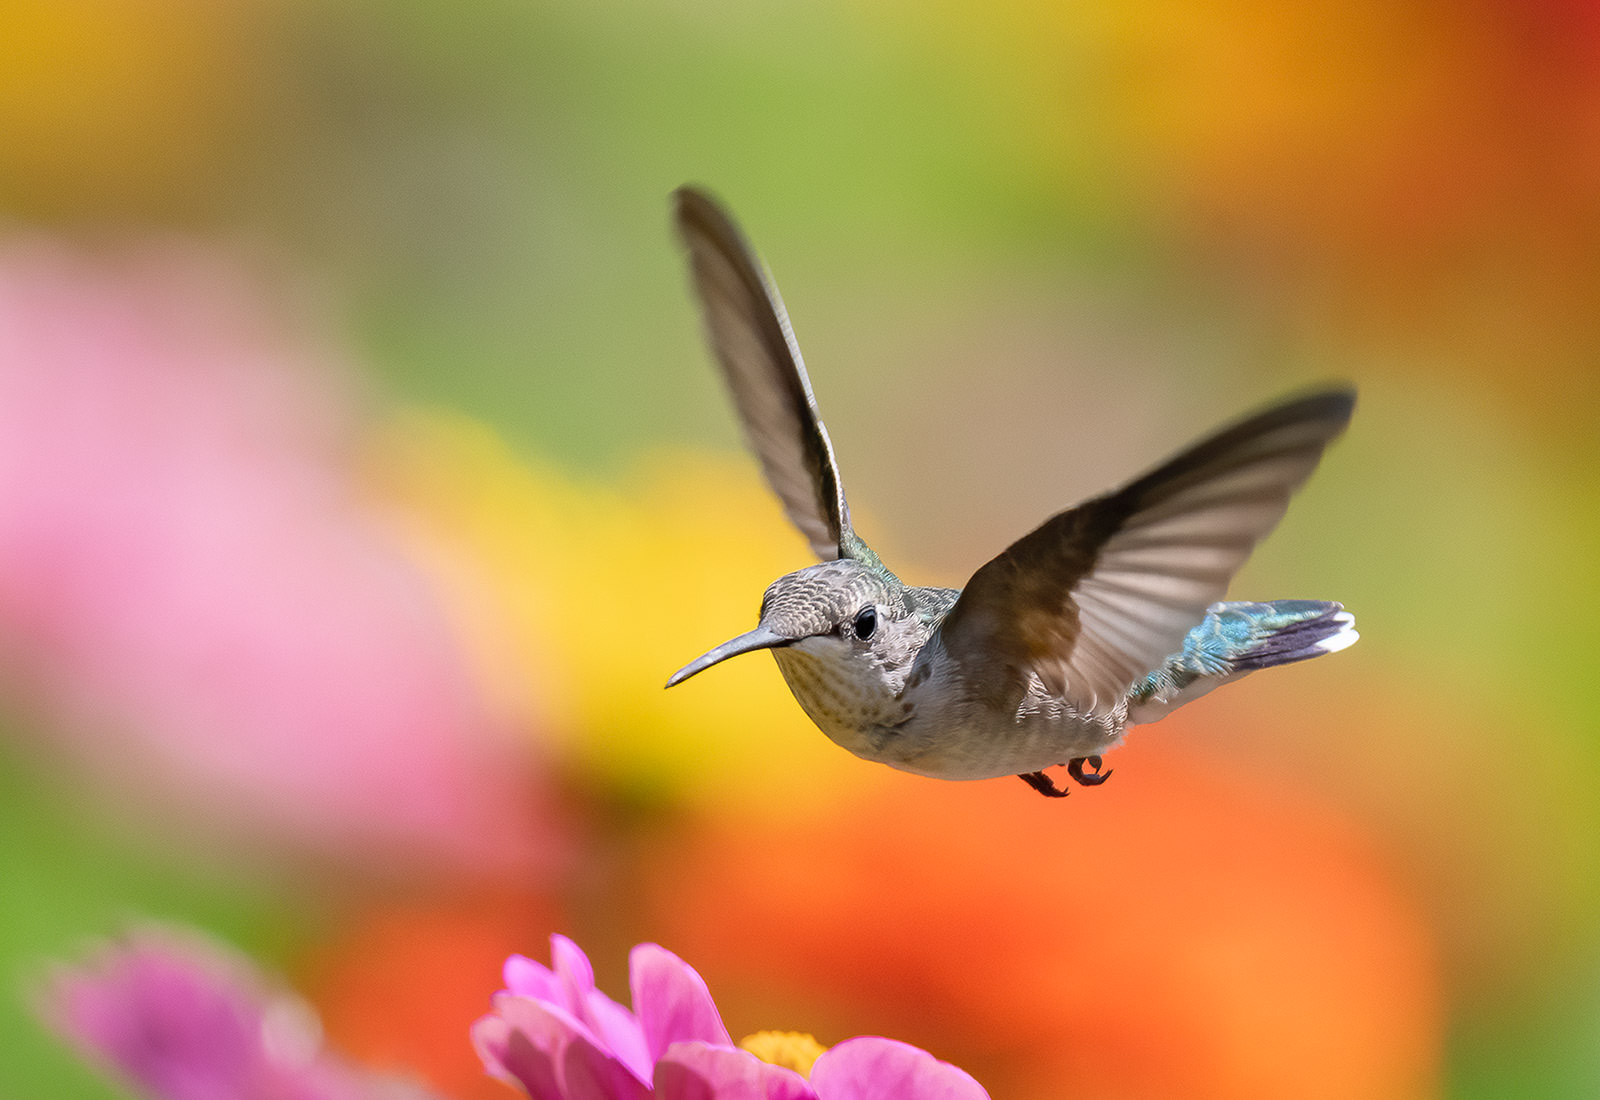 Ruby-throated Hummingbird hovering over flowers